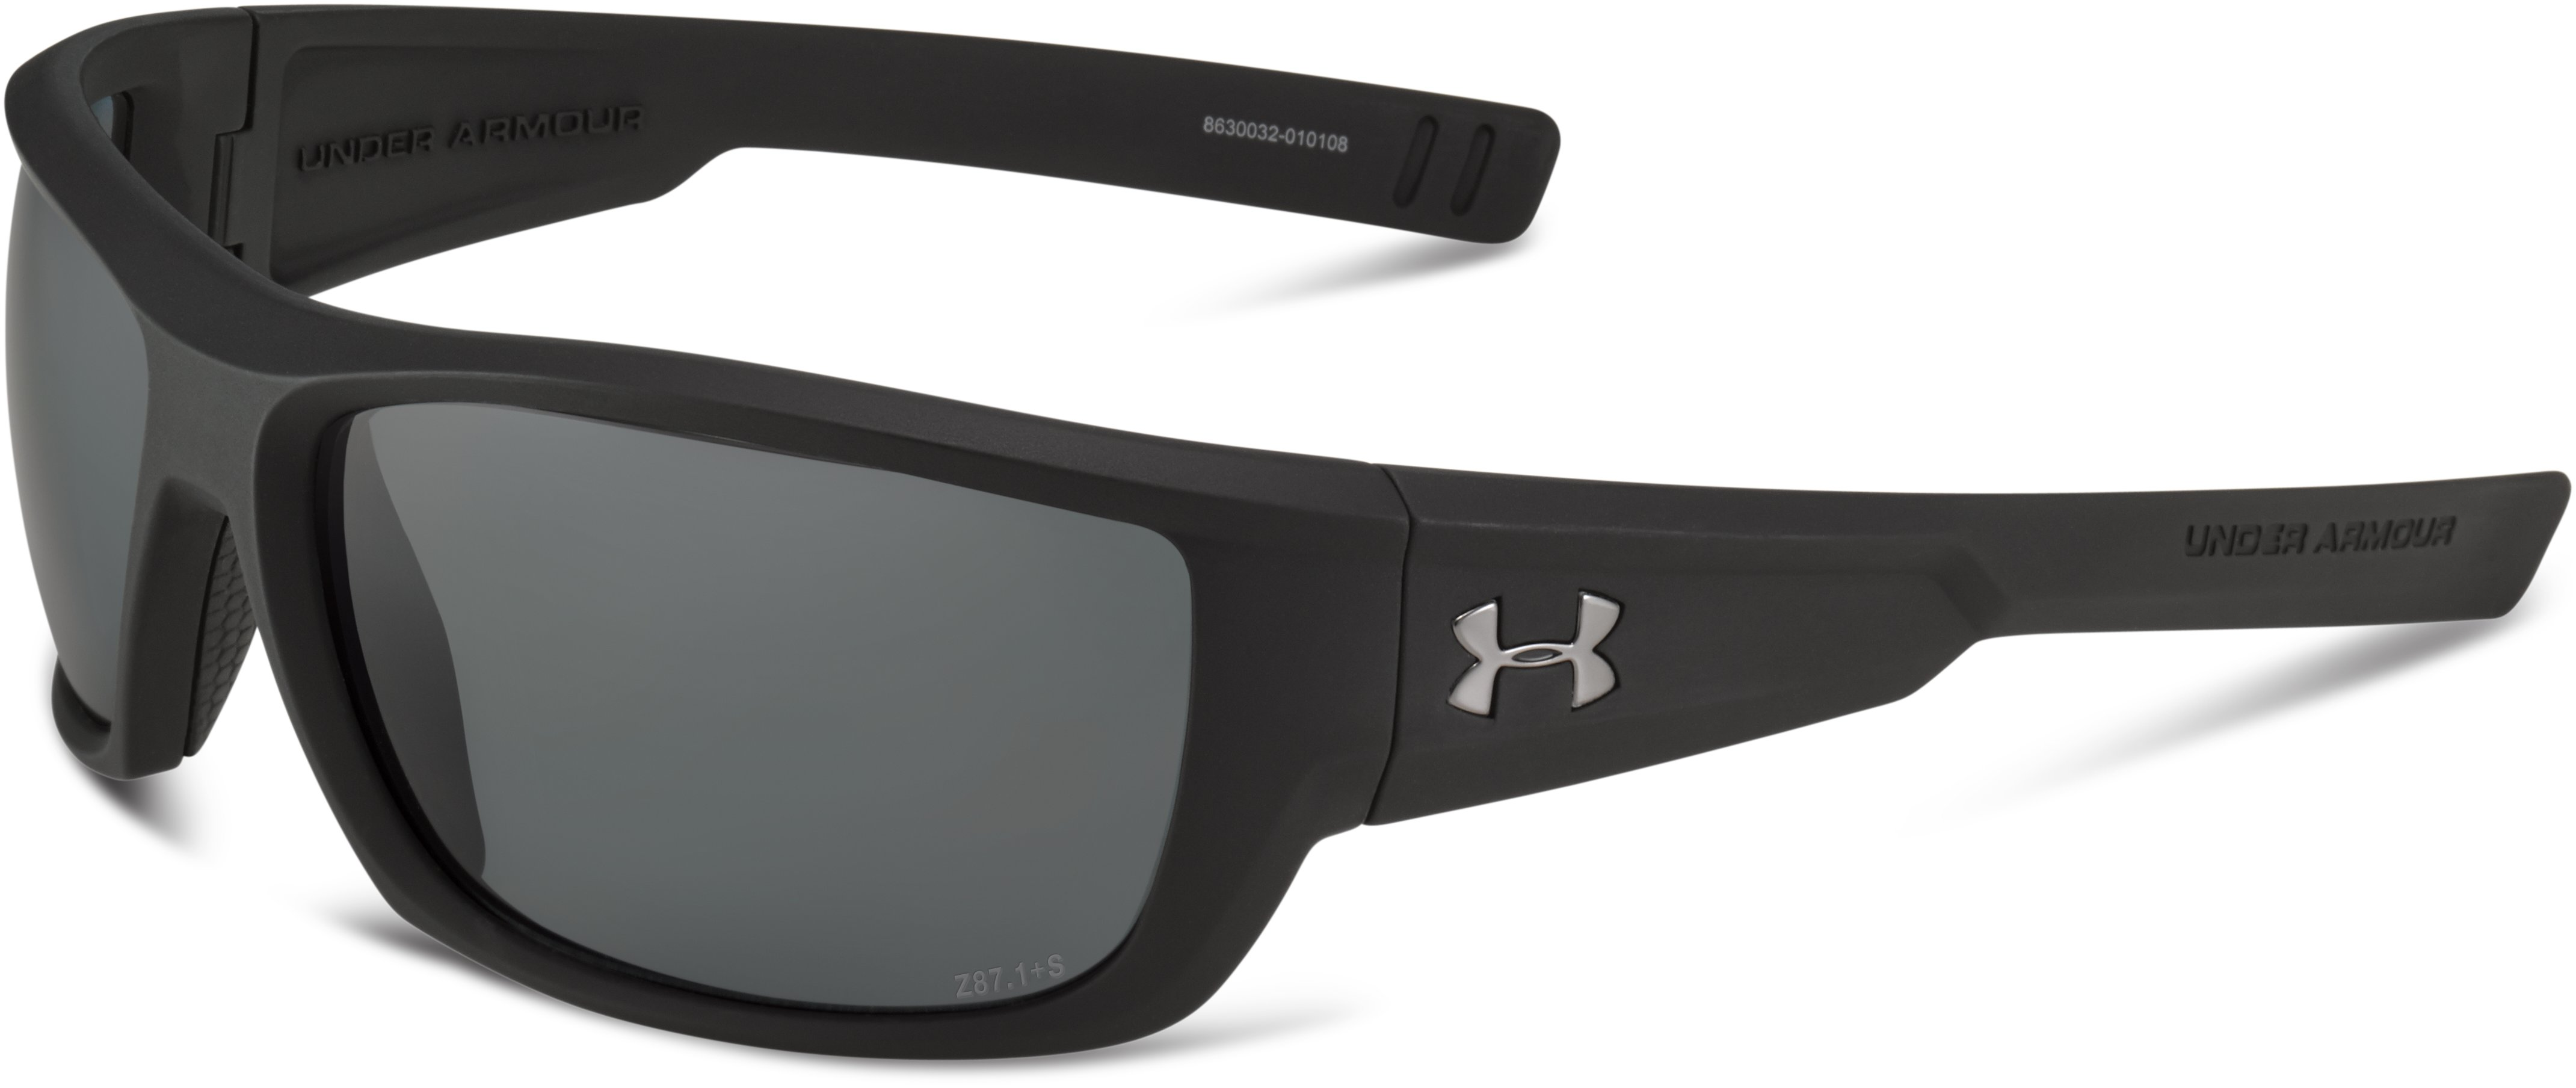 UA Rumble Storm Polarized Sunglasses, Satin Black